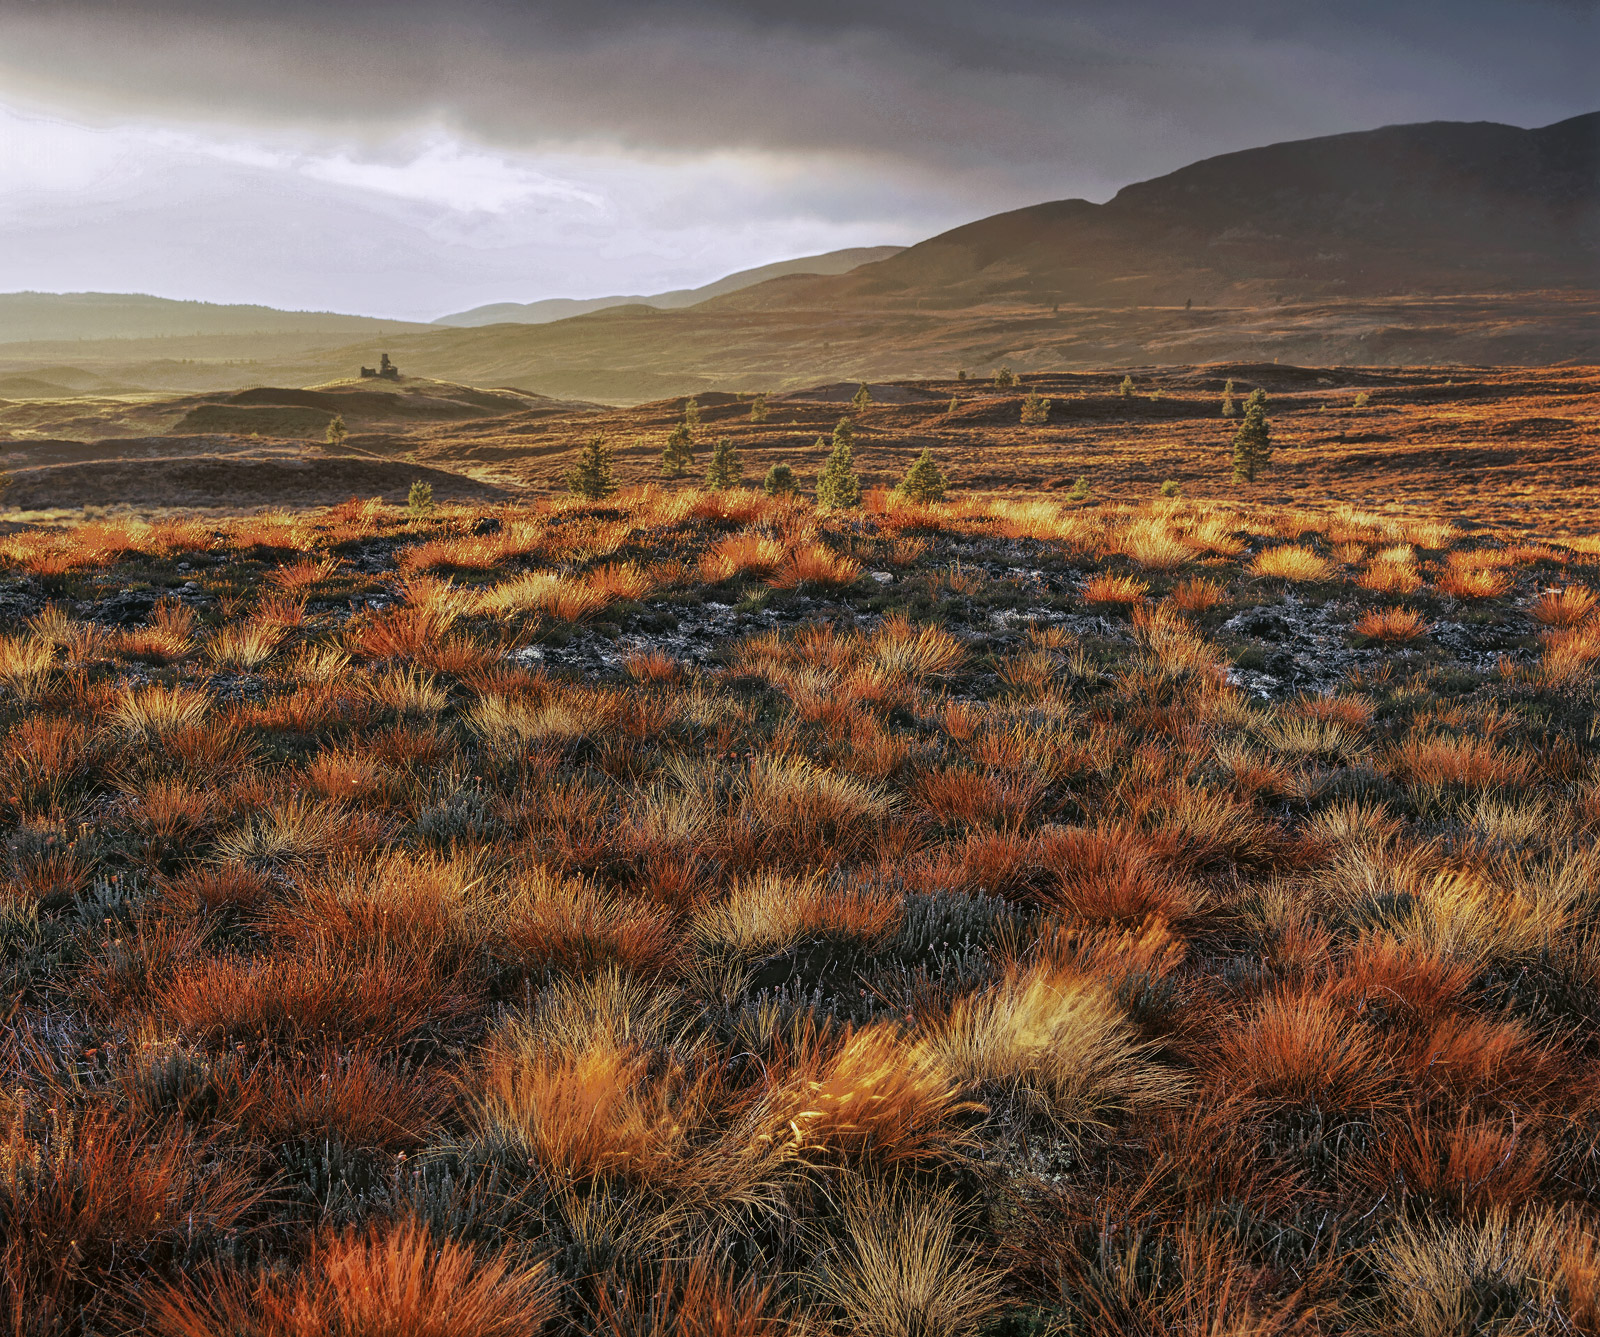 Brilliant sunlight passes below low clouds covering Dava moor and backlights the fire grass that has turned to burnt amber in...